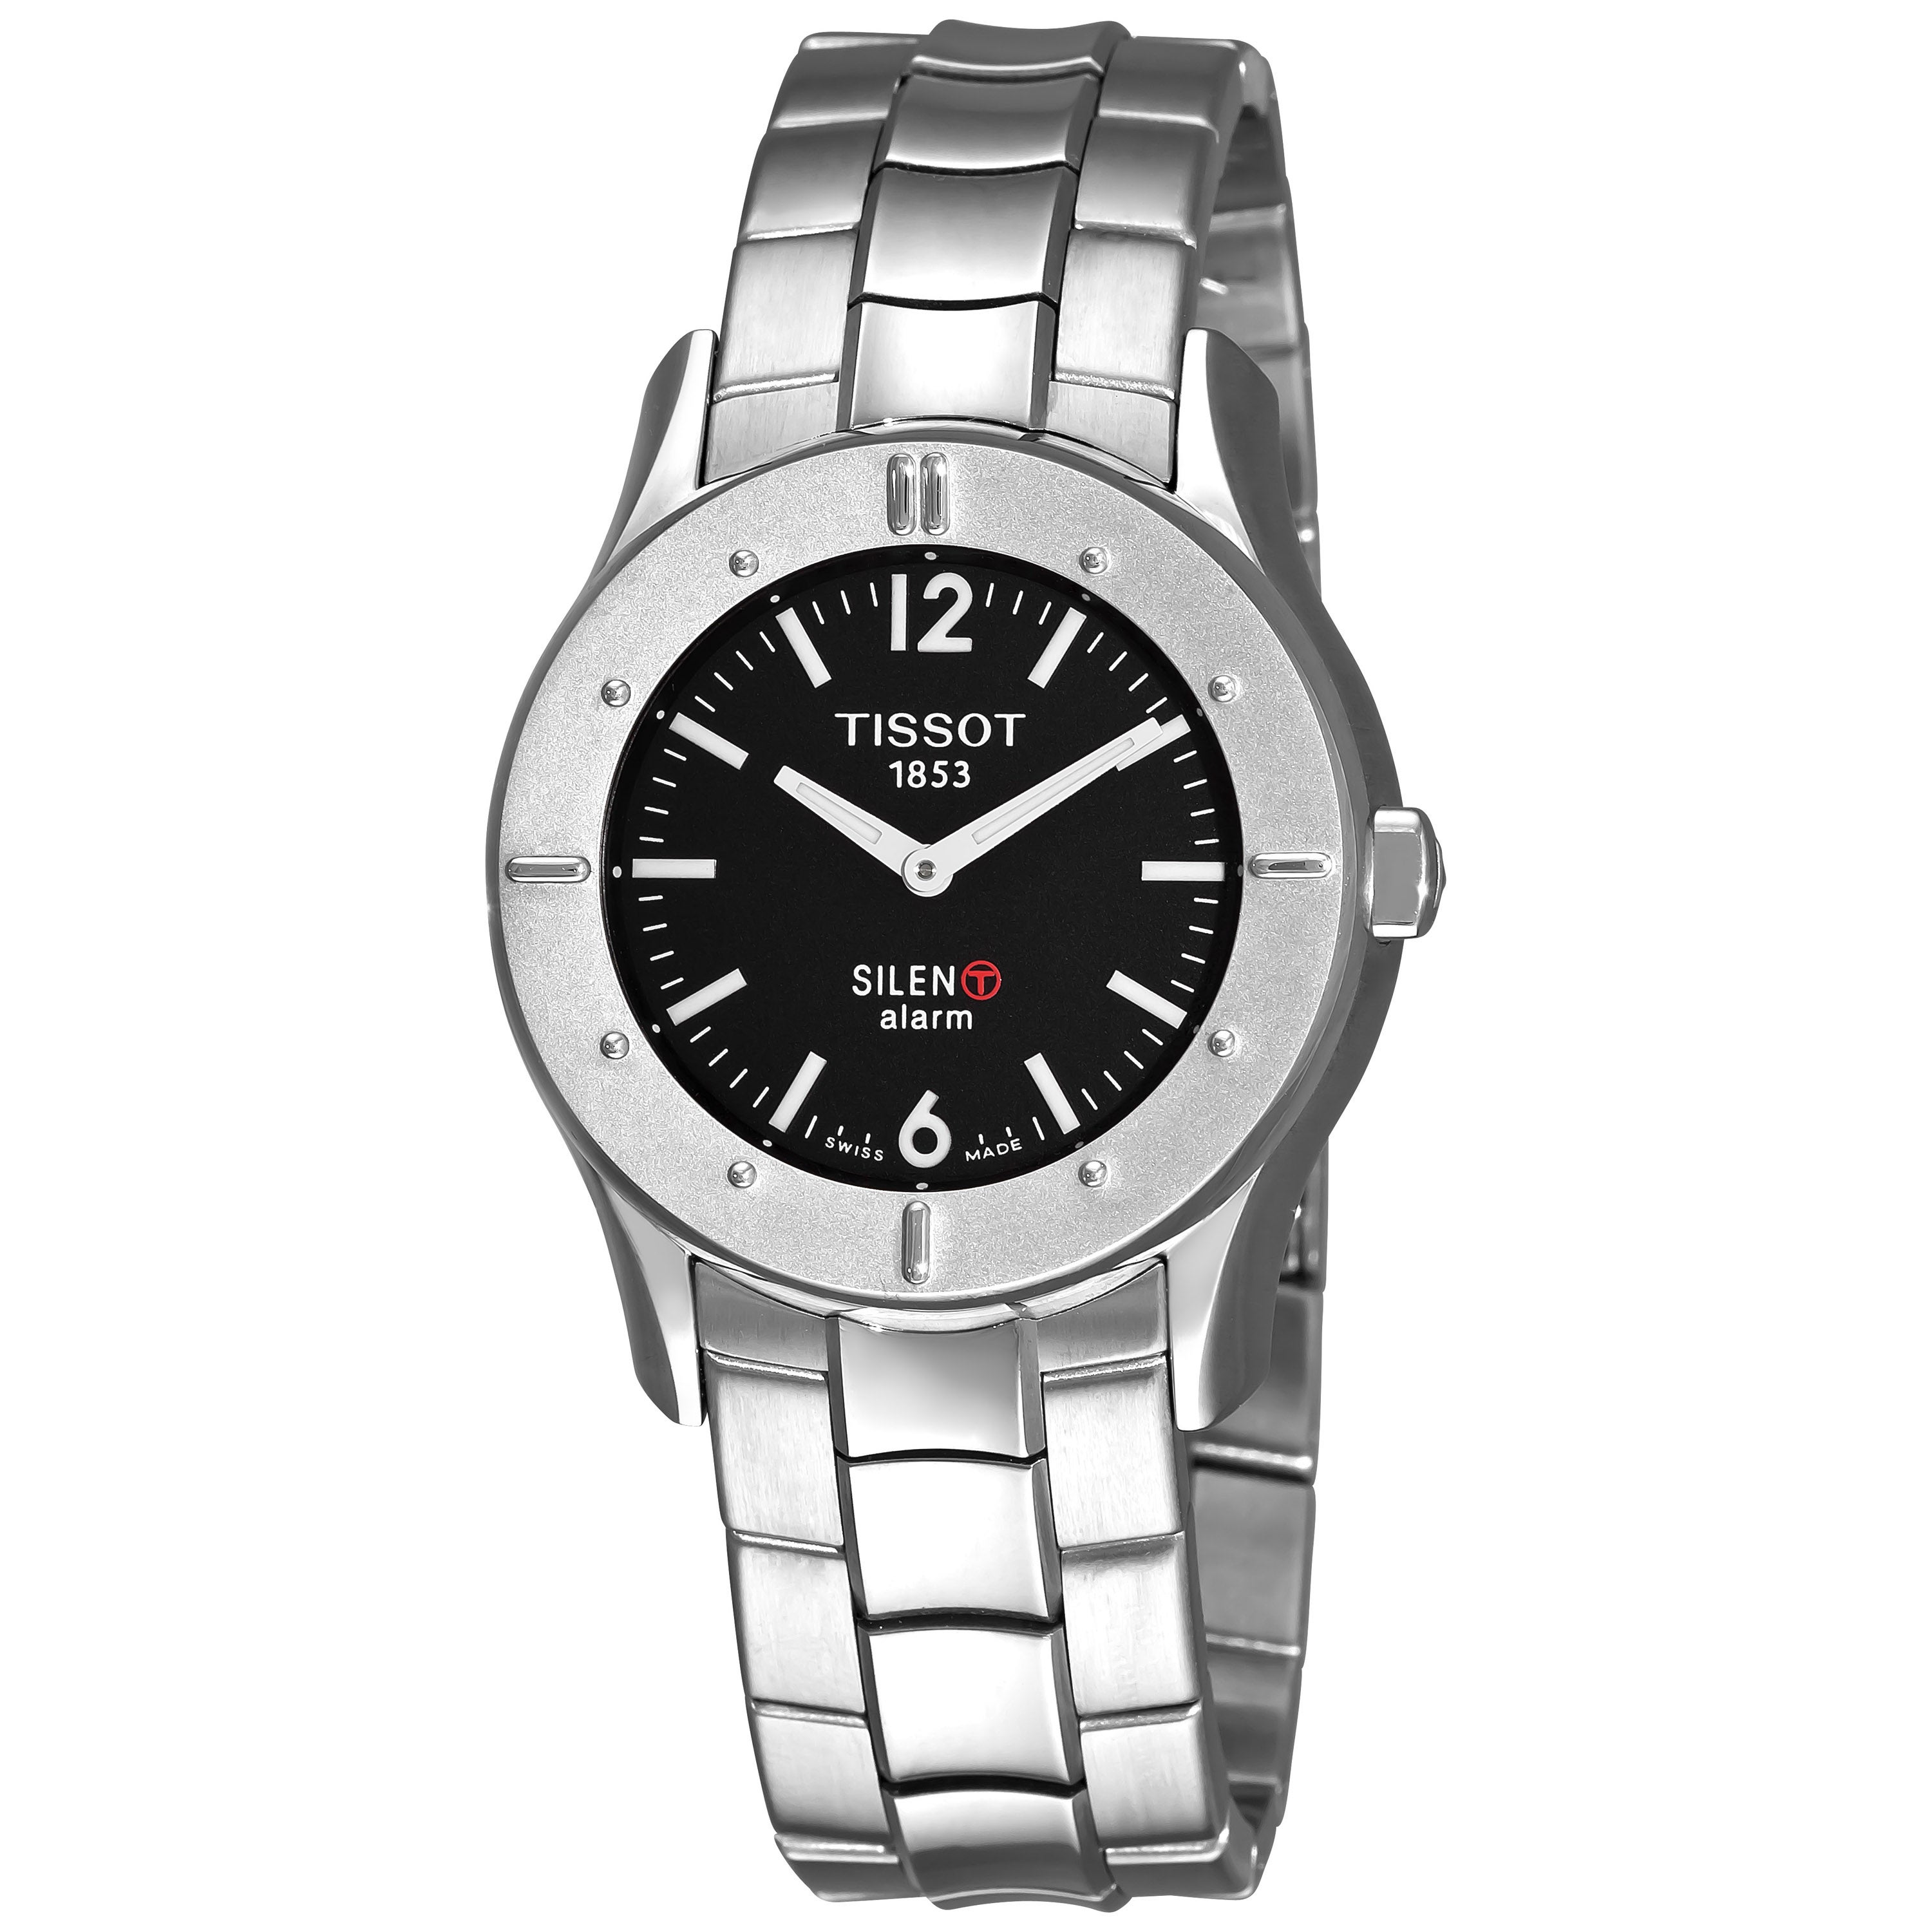 145ccbbbacc Shop Tissot Men s  Touch Silent  Black Dial Stainless Steel Quartz Watch -  Free Shipping Today - Overstock - 6477985